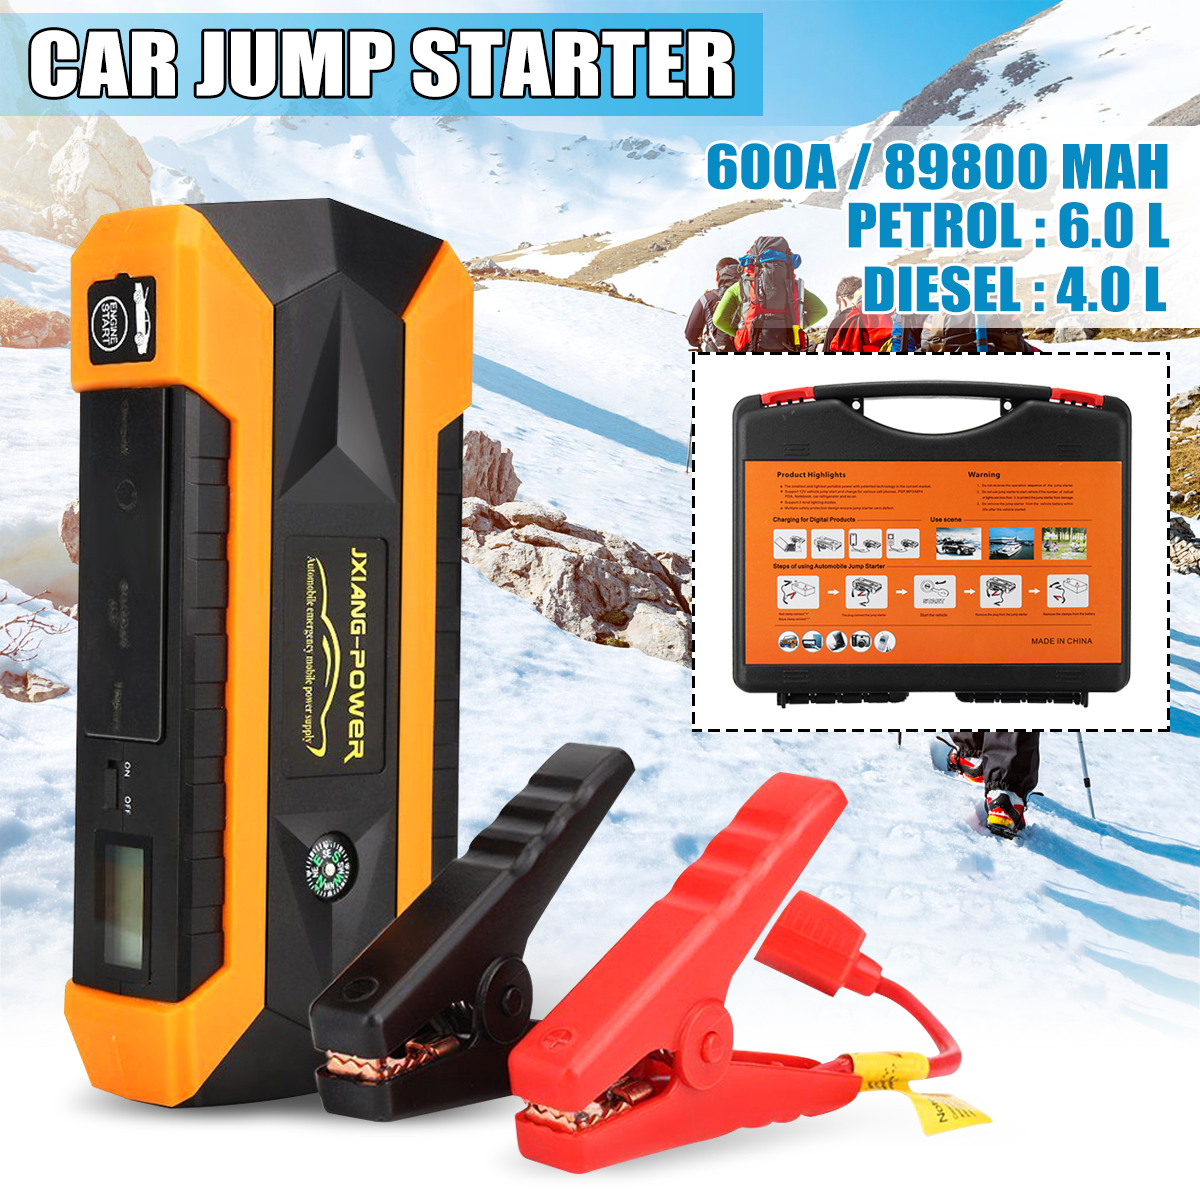 1set 89800mAh 12V 4USB Car Battery Charger Starting Car Jump Starter Booster Power Bank Tool Kit For Auto Starting Device new 12v 89800mah portable 4usb car jump starter power bank tool kit booster charger battery automobile emergency led light